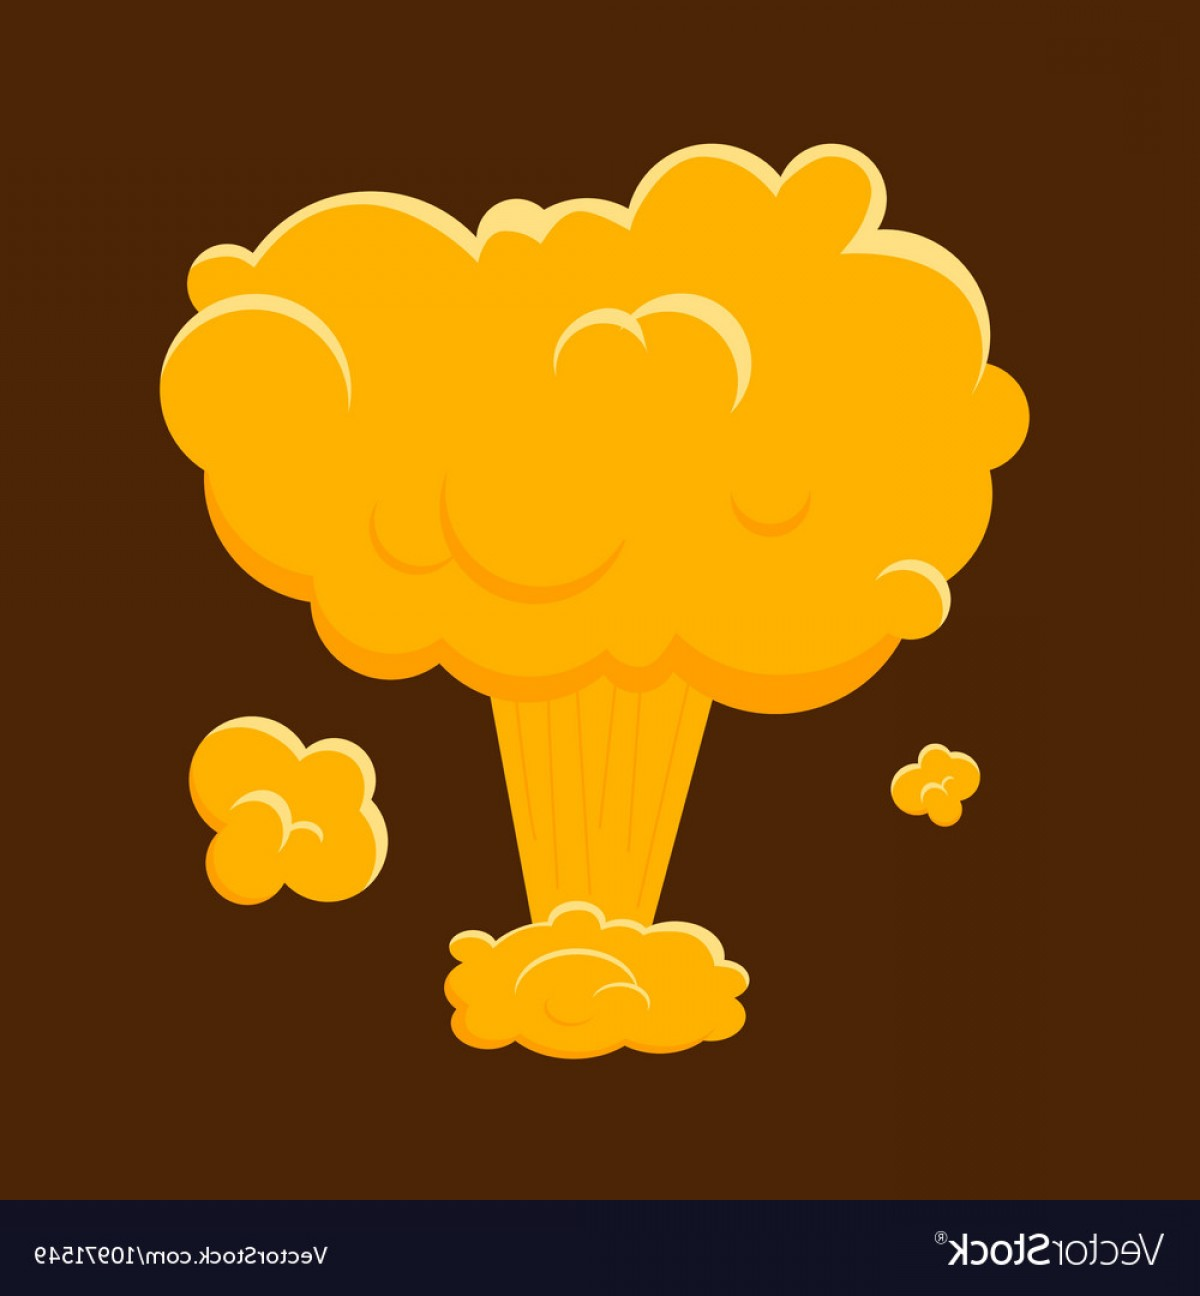 Atomic Bomb Explosion Vector: Cartoon Nuclear Bomb Explosion Vector